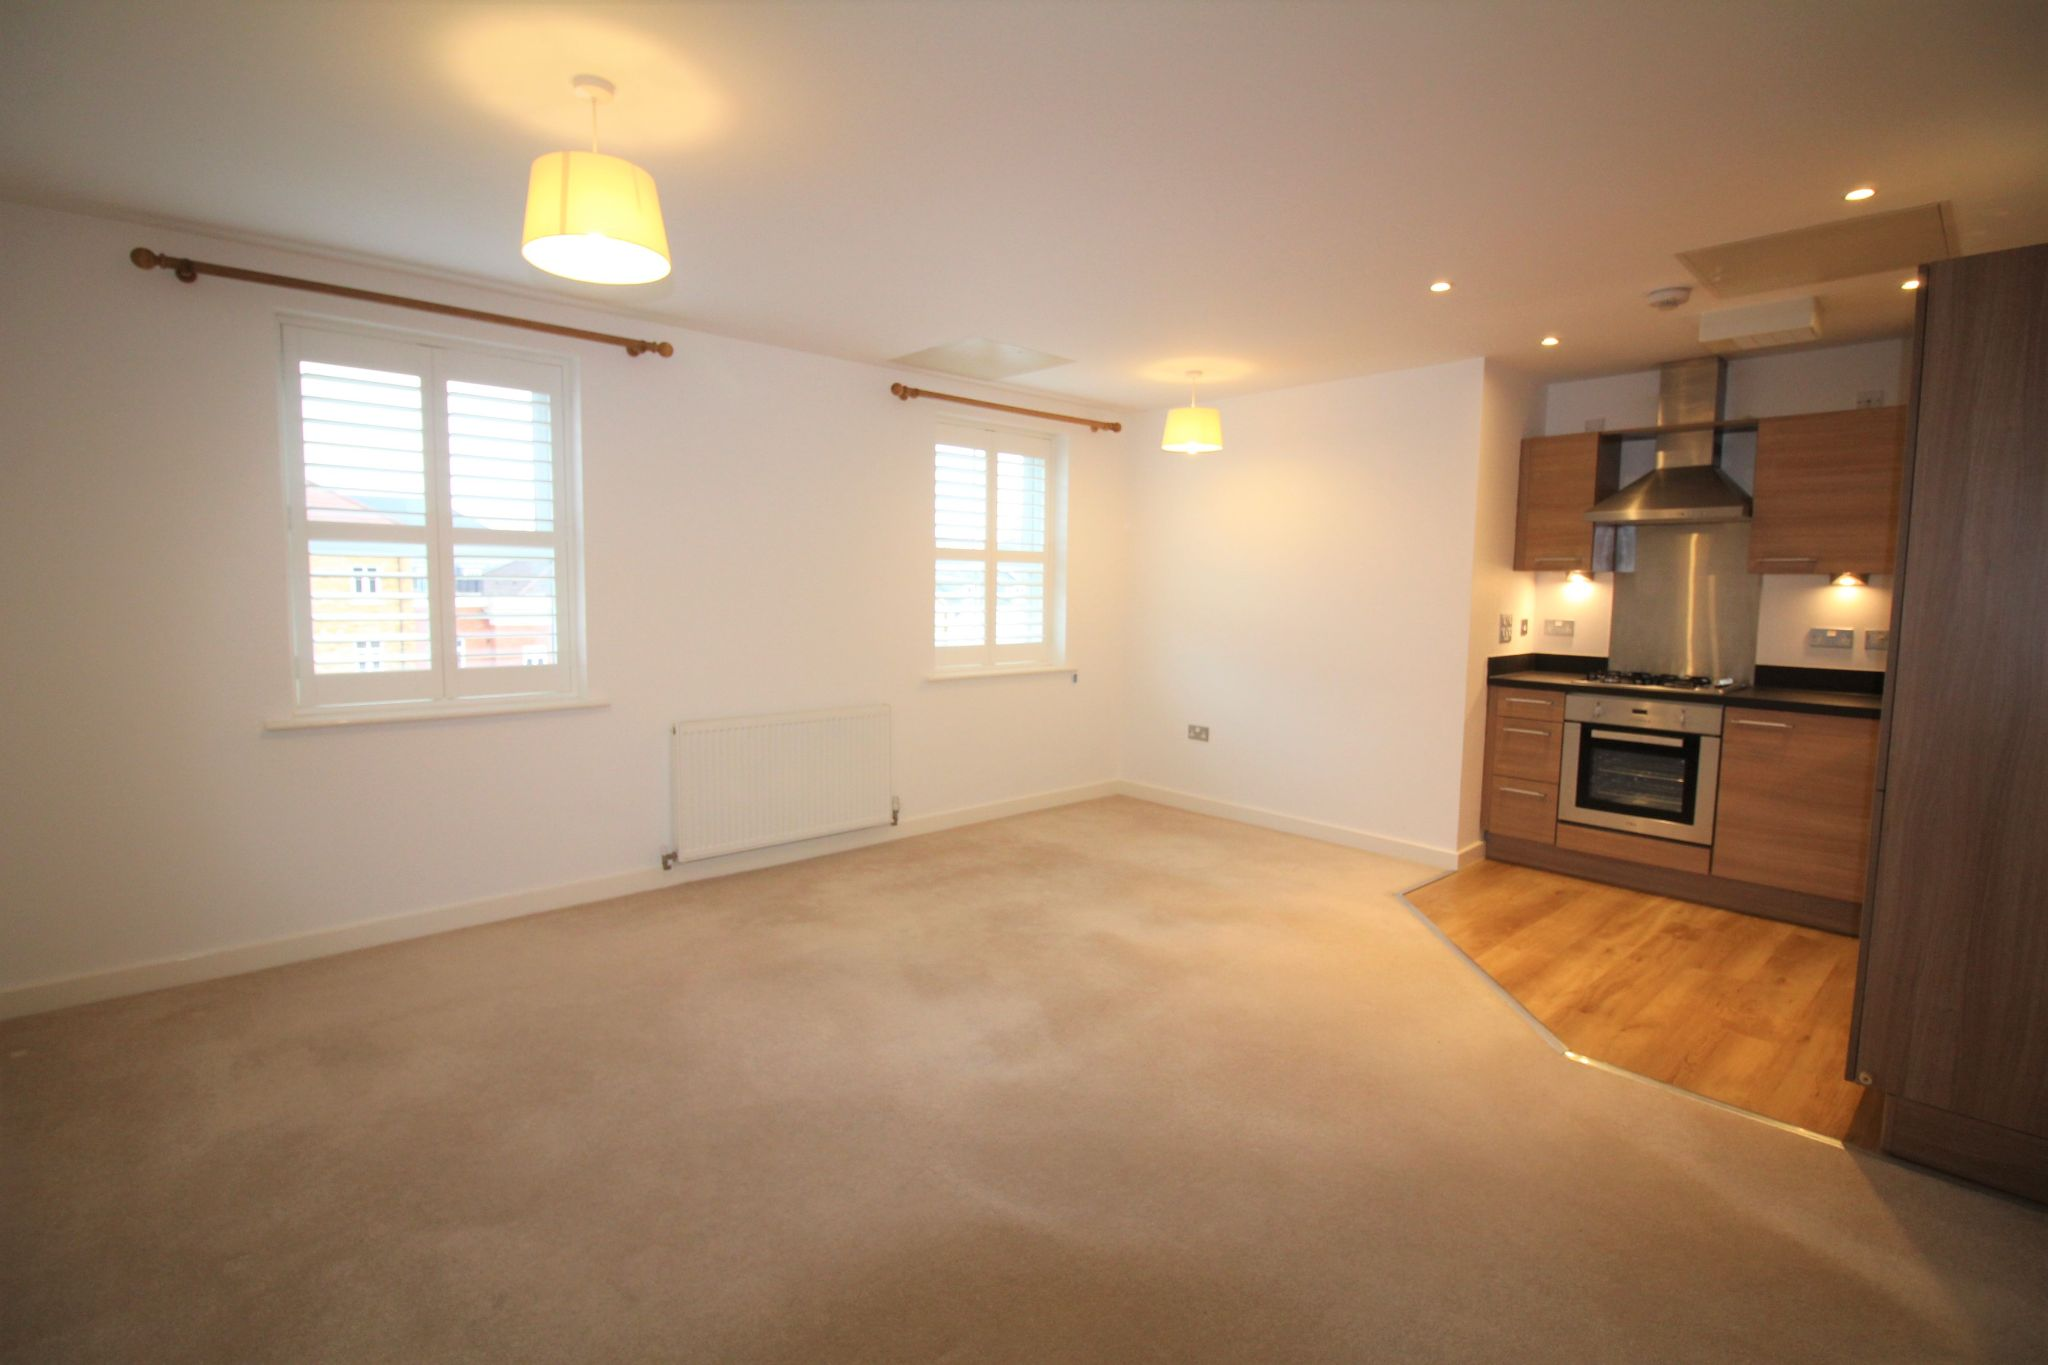 2 bedroom apartment flat/apartment For Sale in Solihull - Photograph 5.